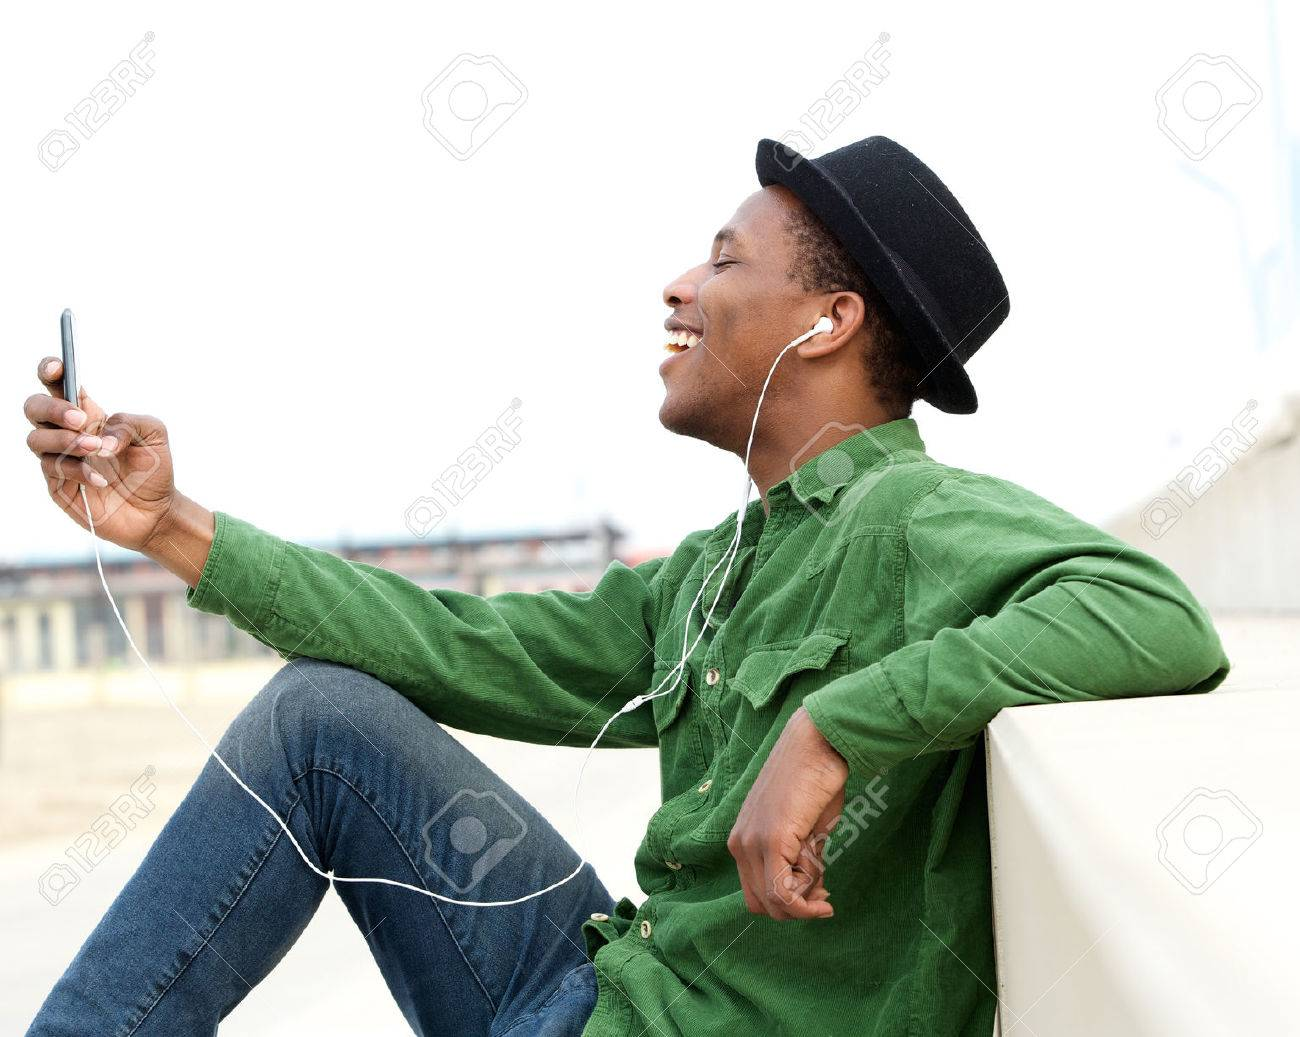 Image result for guy walking and listening to music